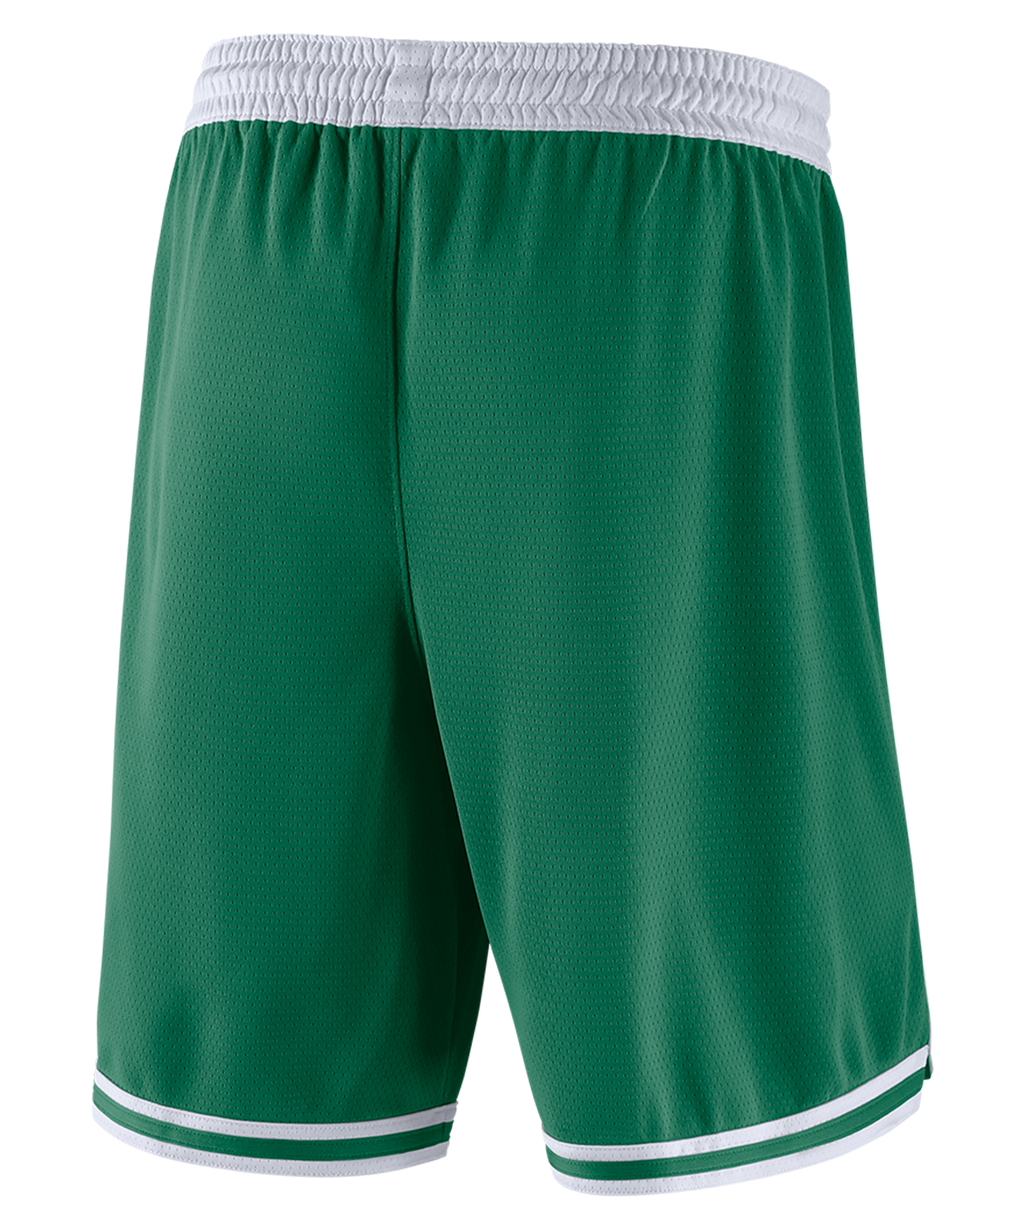 Boston Celtics Nike Icon Edition Shorts